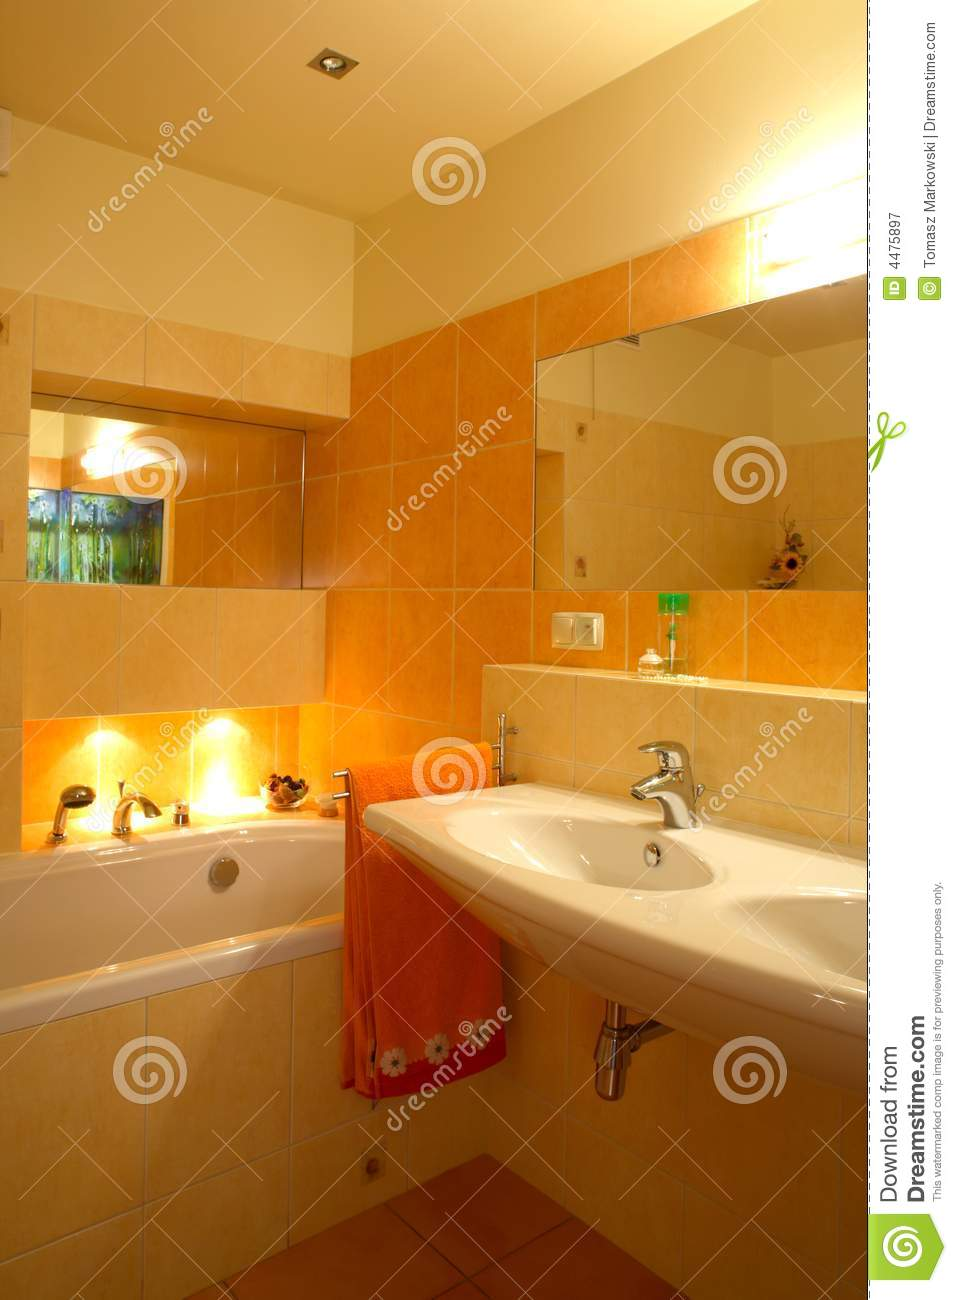 Orange Bathroom Royalty Free Stock Photography  Image